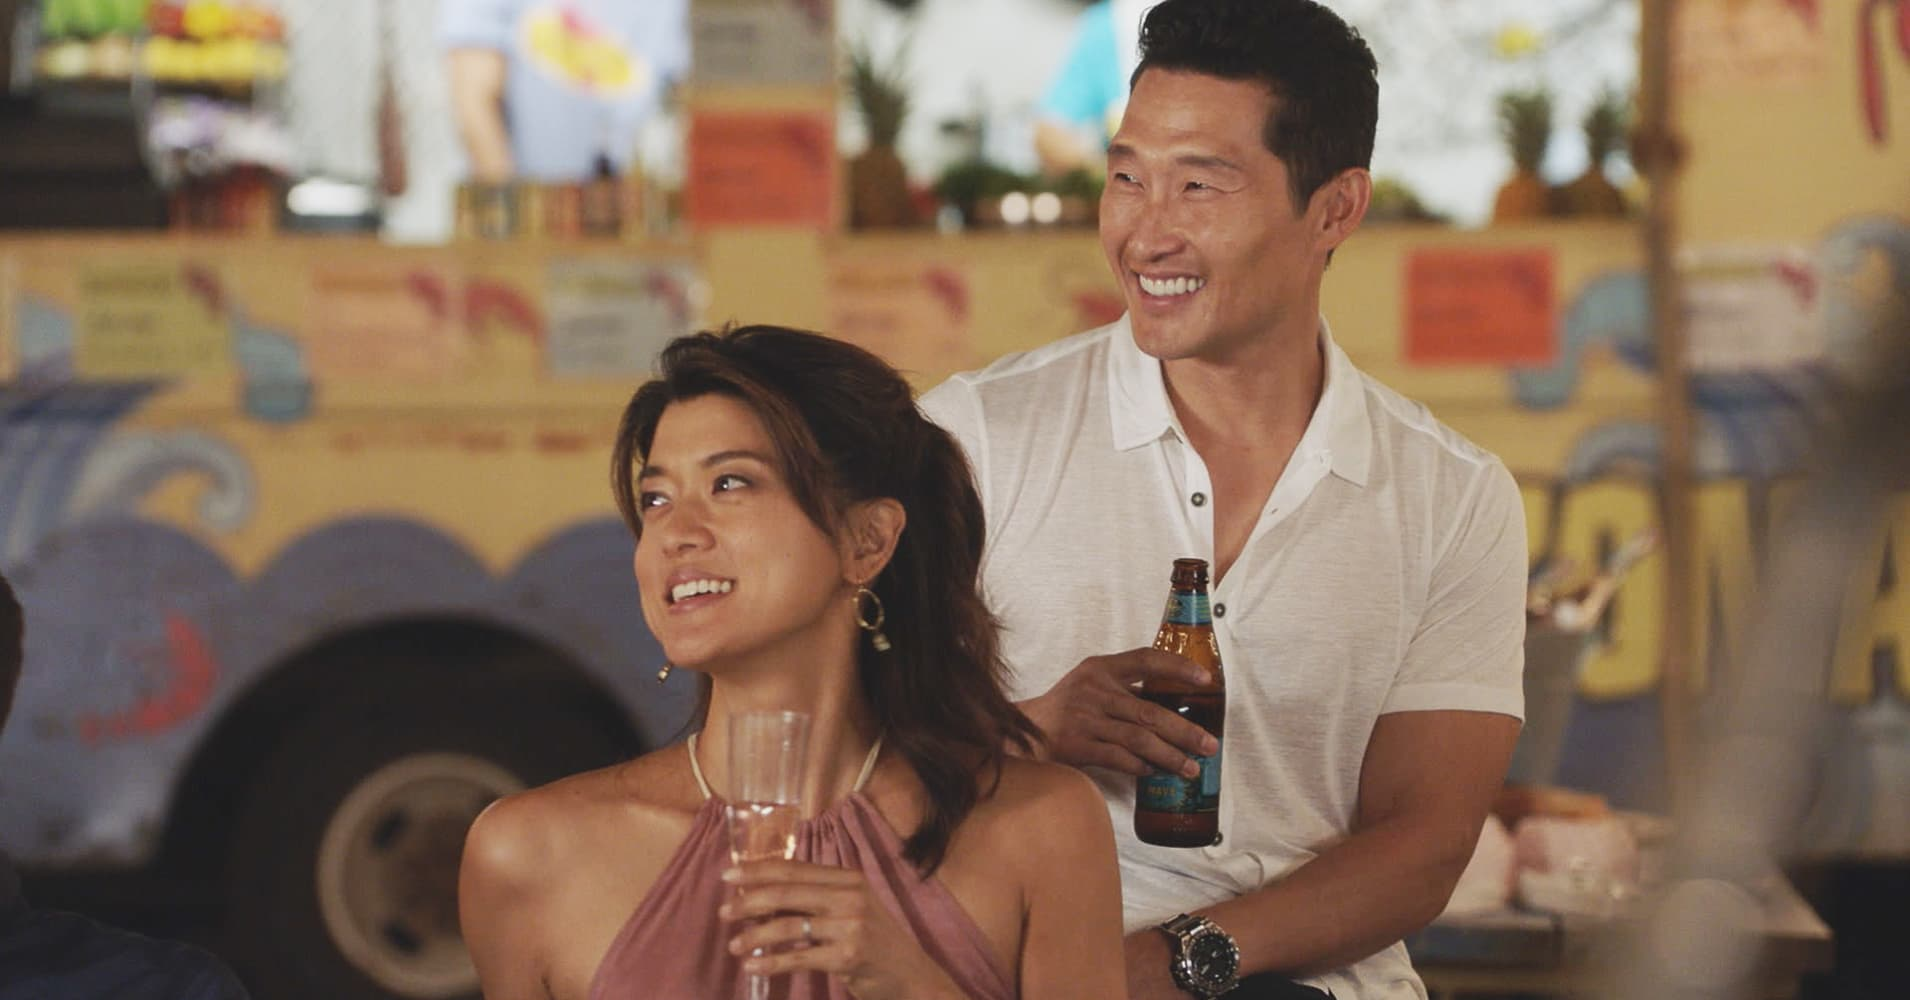 Grace Park as Kono Kalakaua and Daniel Dae Kim as Chin Ho Kelly on CBS' 'Hawaii Five-O'